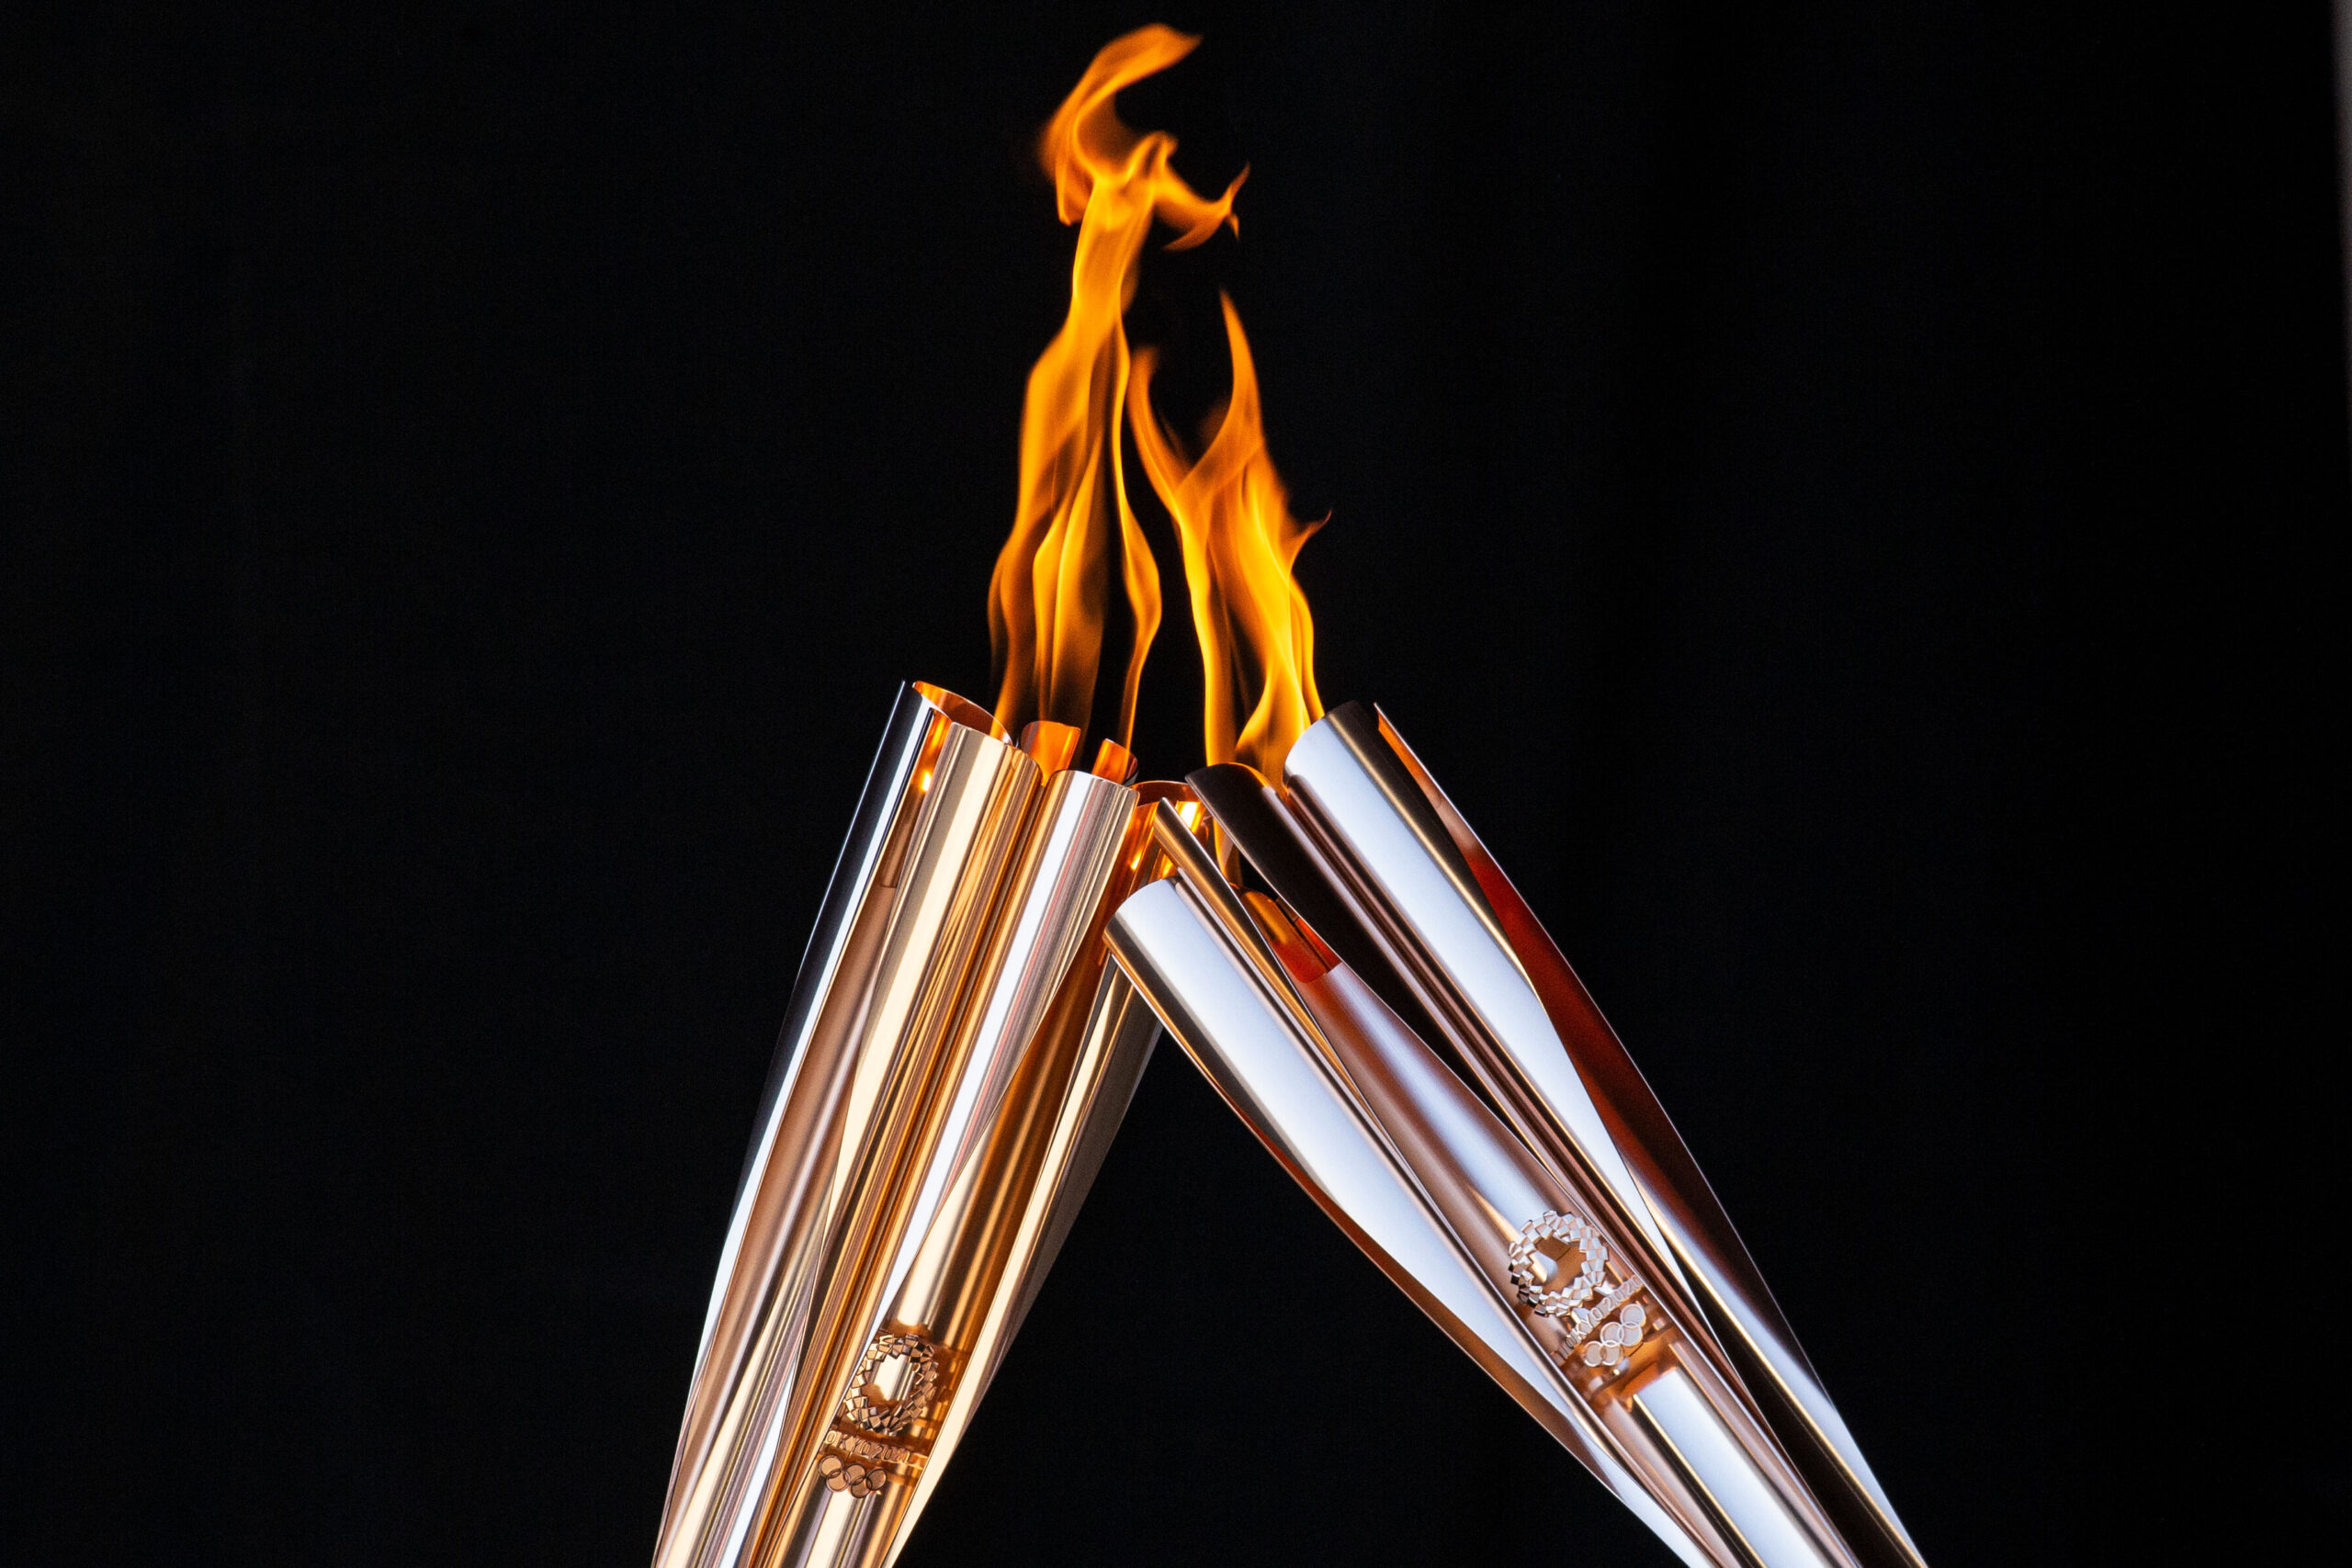 <i>Yuichi Yamazaki/Getty Images</i><br/>Torch bearers exchange the flame during the Olympic Torch Relay Celebration event on July 21